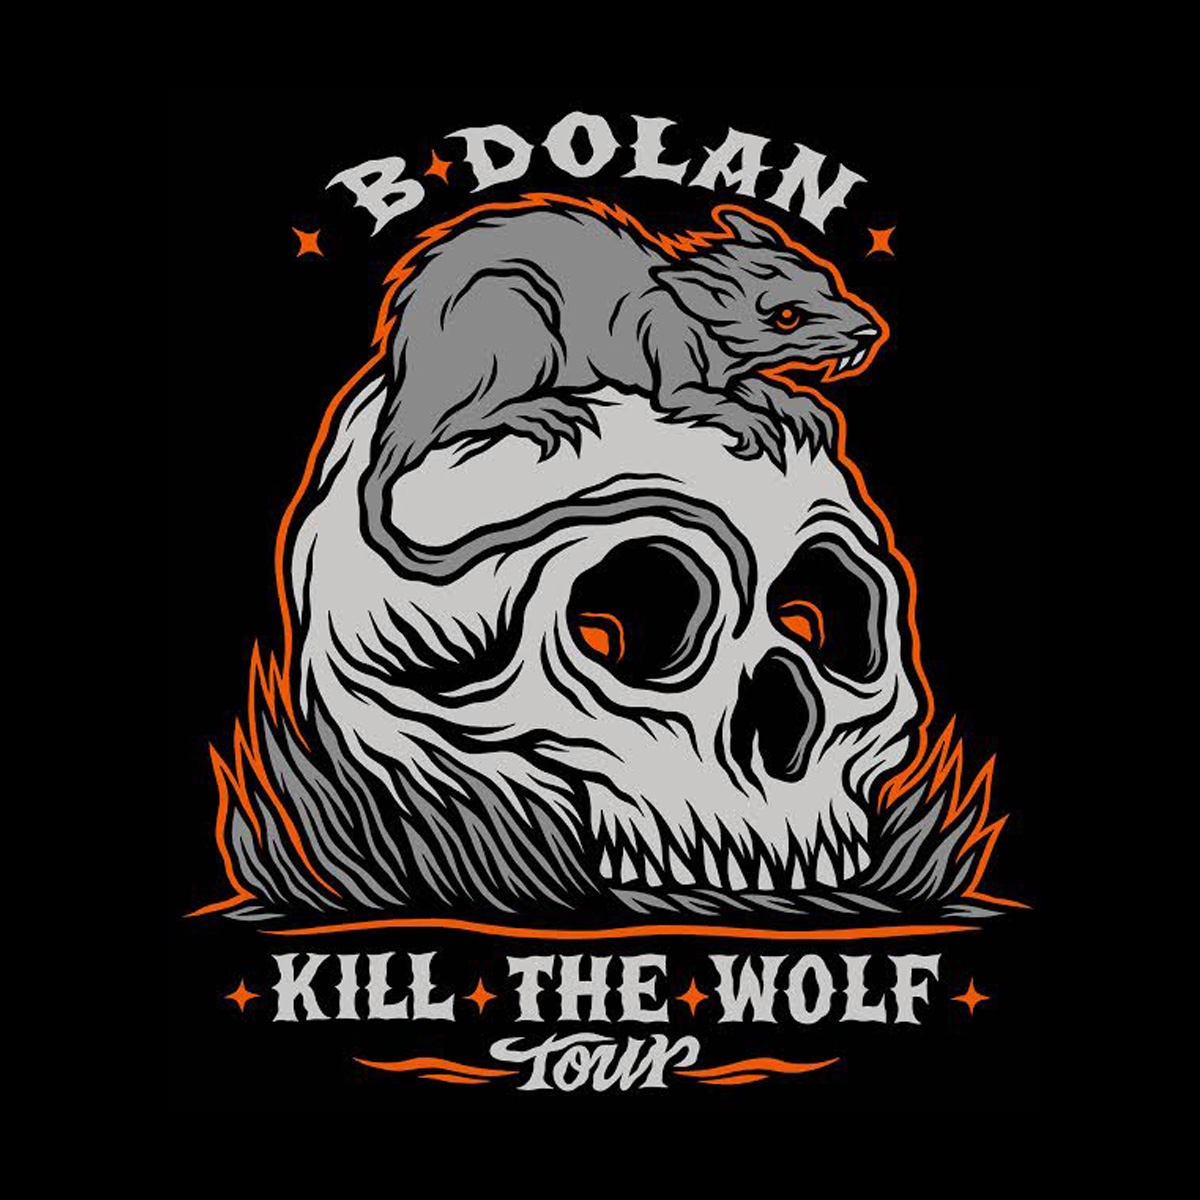 B DOLAN KILL THE WOLF TOUR Tickets | Volcanic Theatre | Bend, Or | Wed, Mar  30, 2016 at 8pm | Bend Ticket